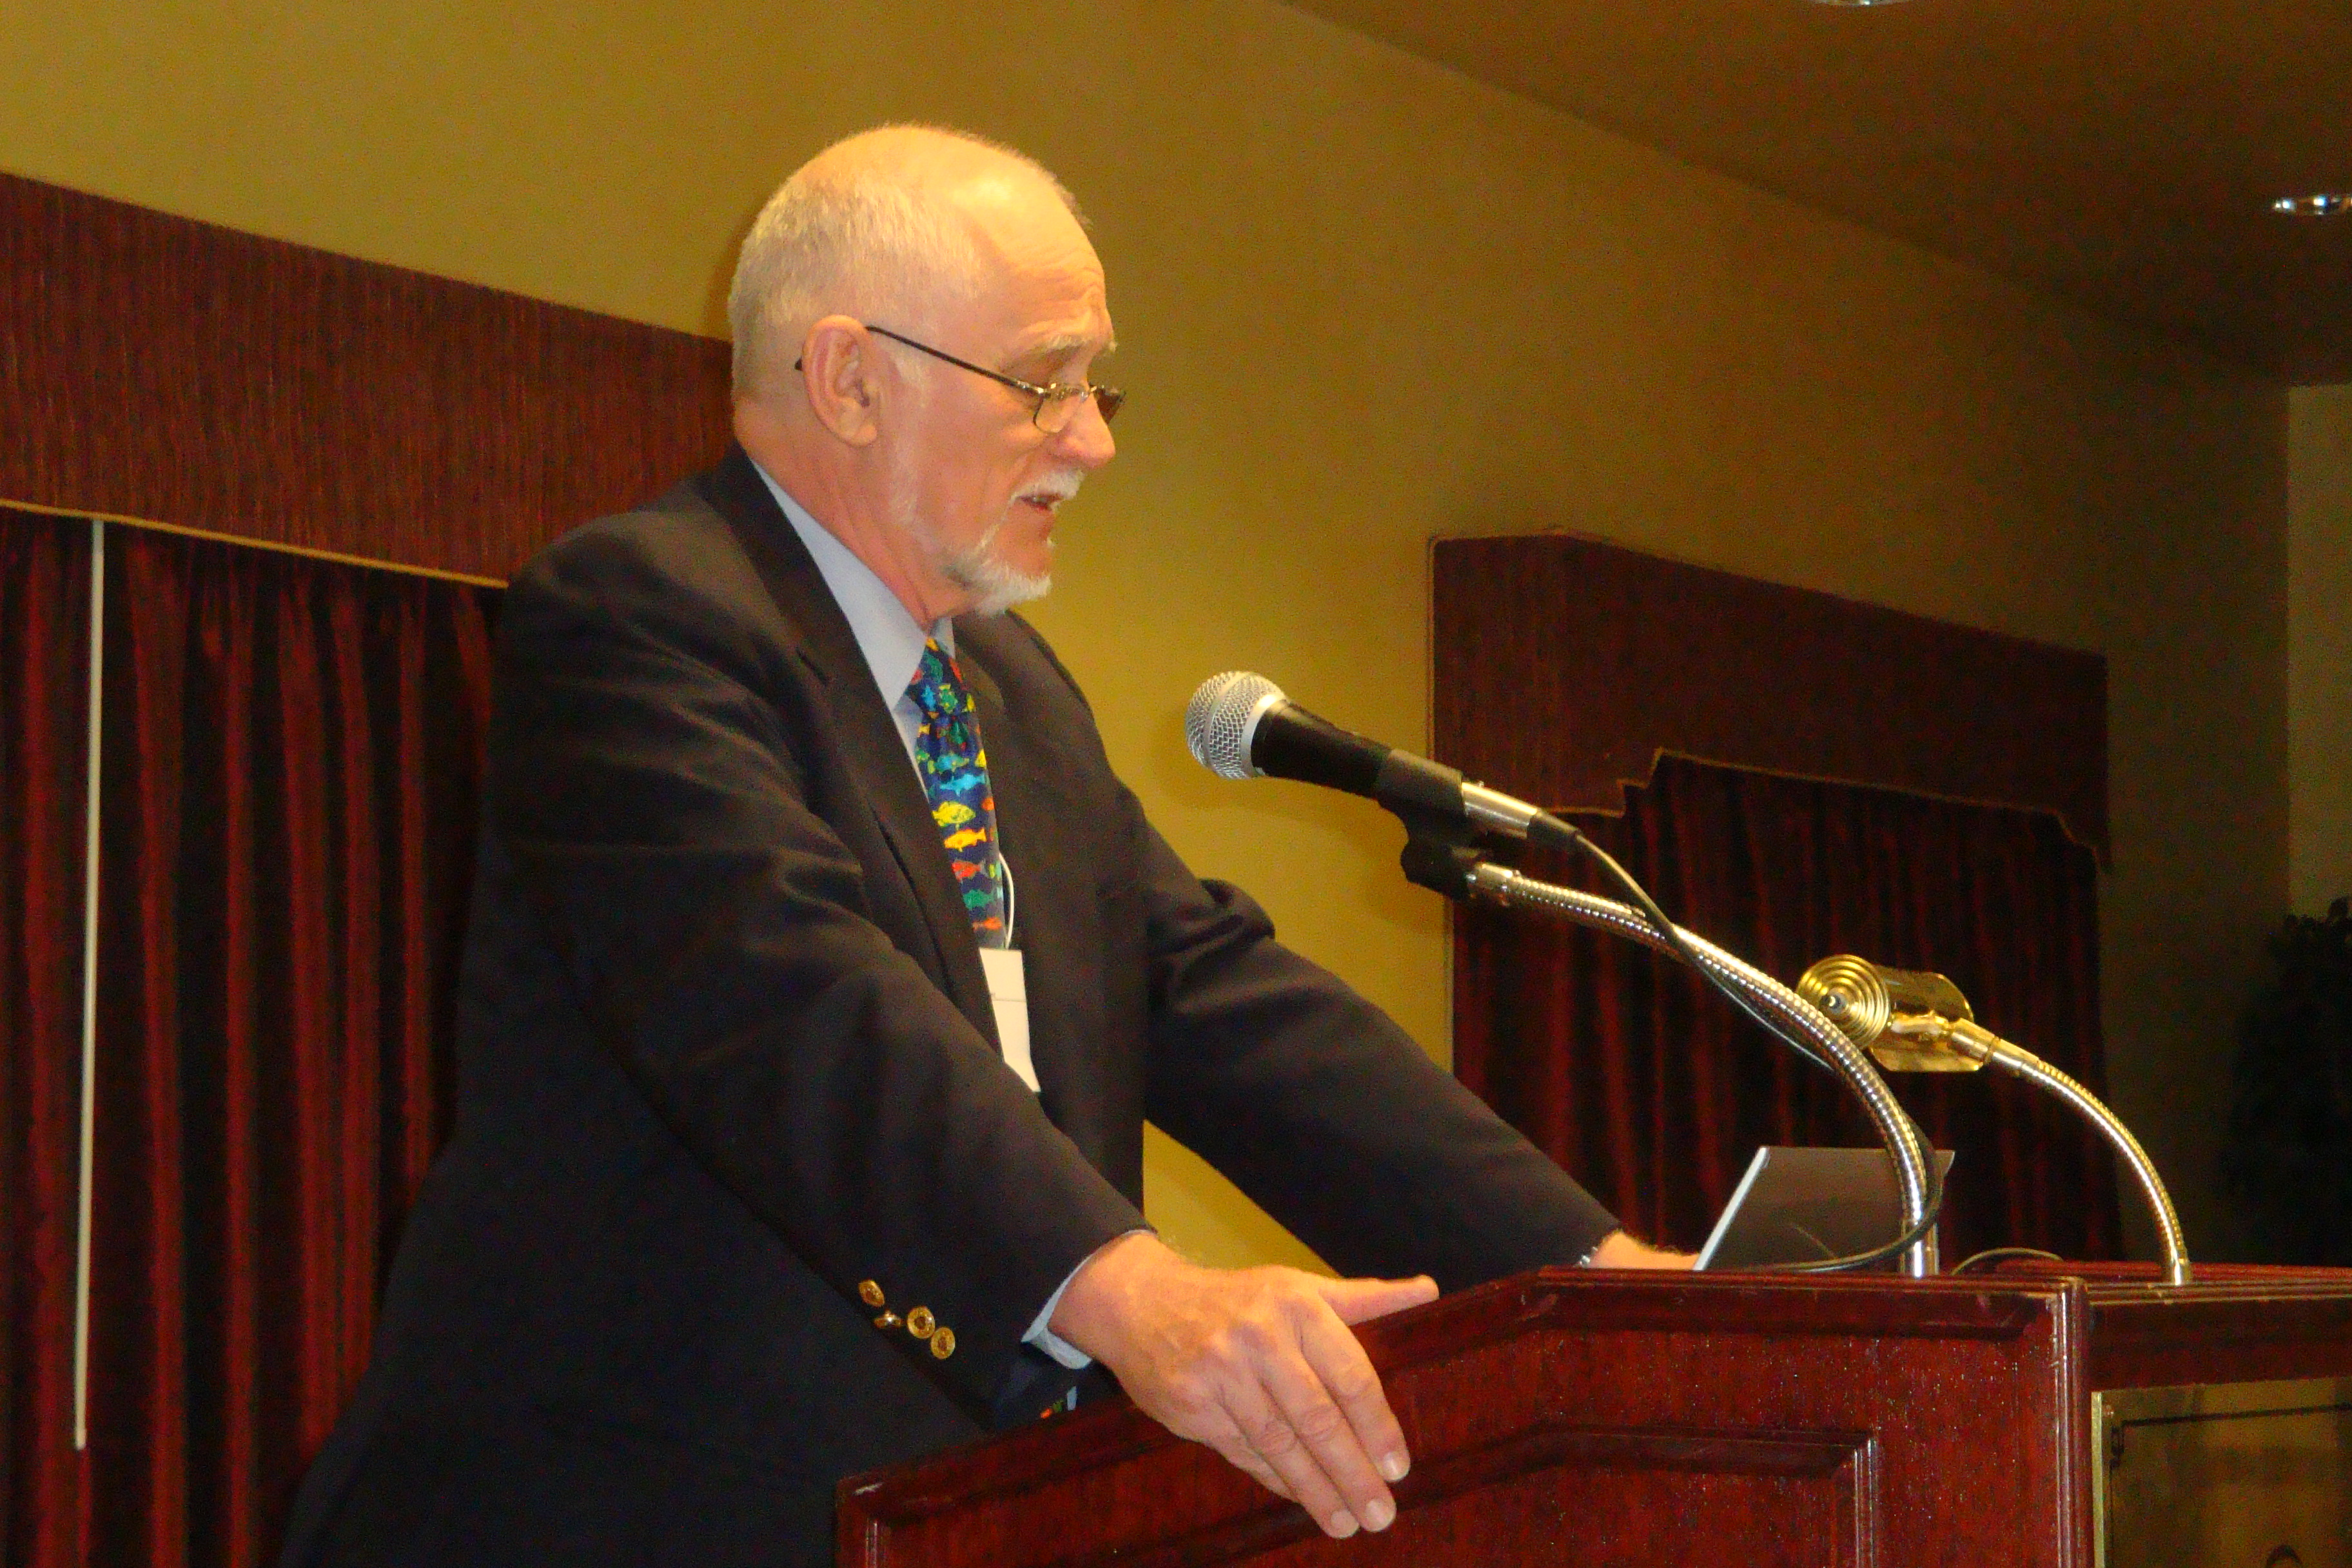 Bob Stimson delivers his Presidential Address